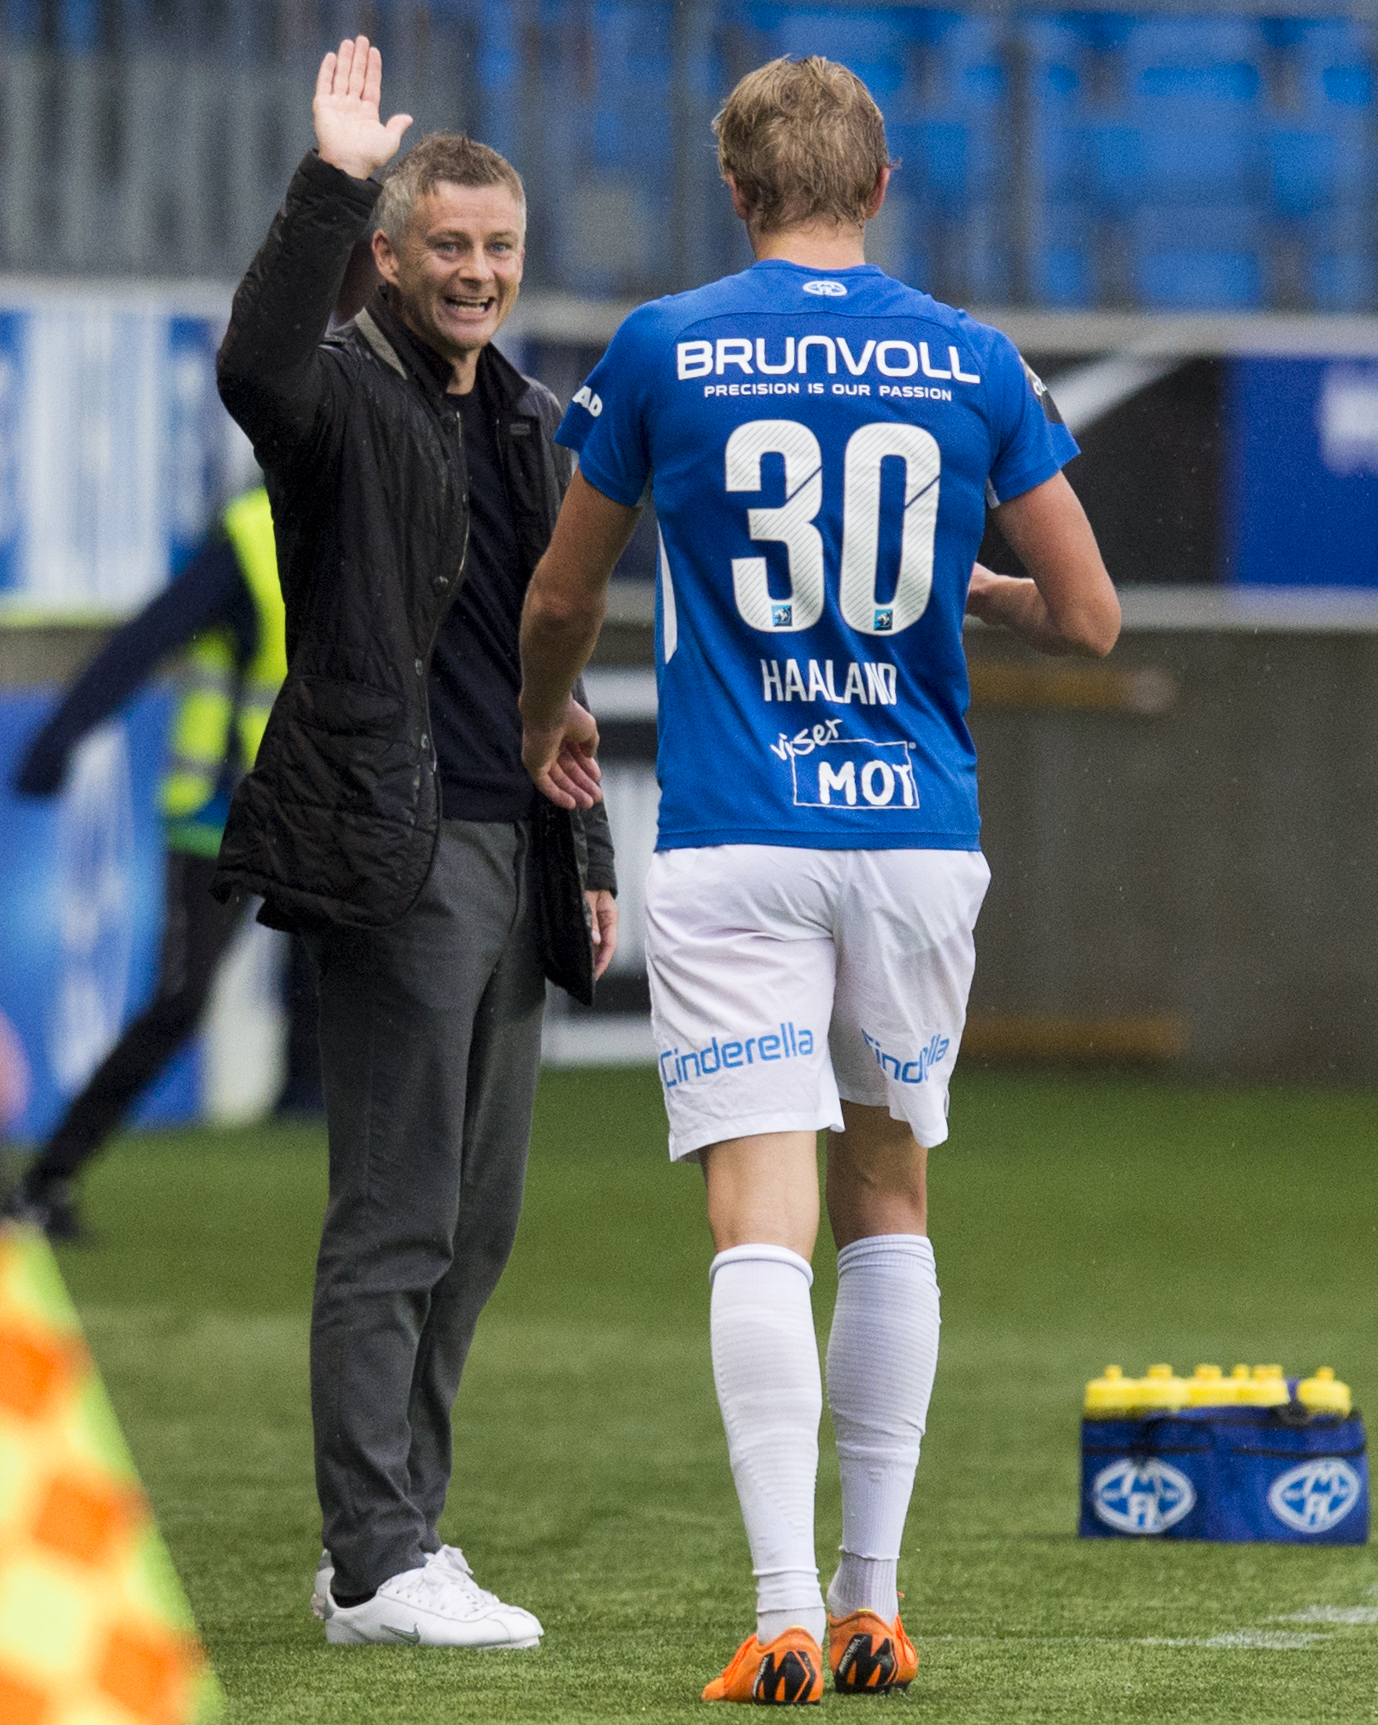 16/08/18 UEFA EUROPA LEAGUE THIRD QUALIFYING ROUND 2ND LEG.MOLDE FK V HIBERNIAN.MOLDE - NORWAY .Molde manager Ole Gunnar Solskjaer celebrates with Erling Braut Haland as he is substituted.